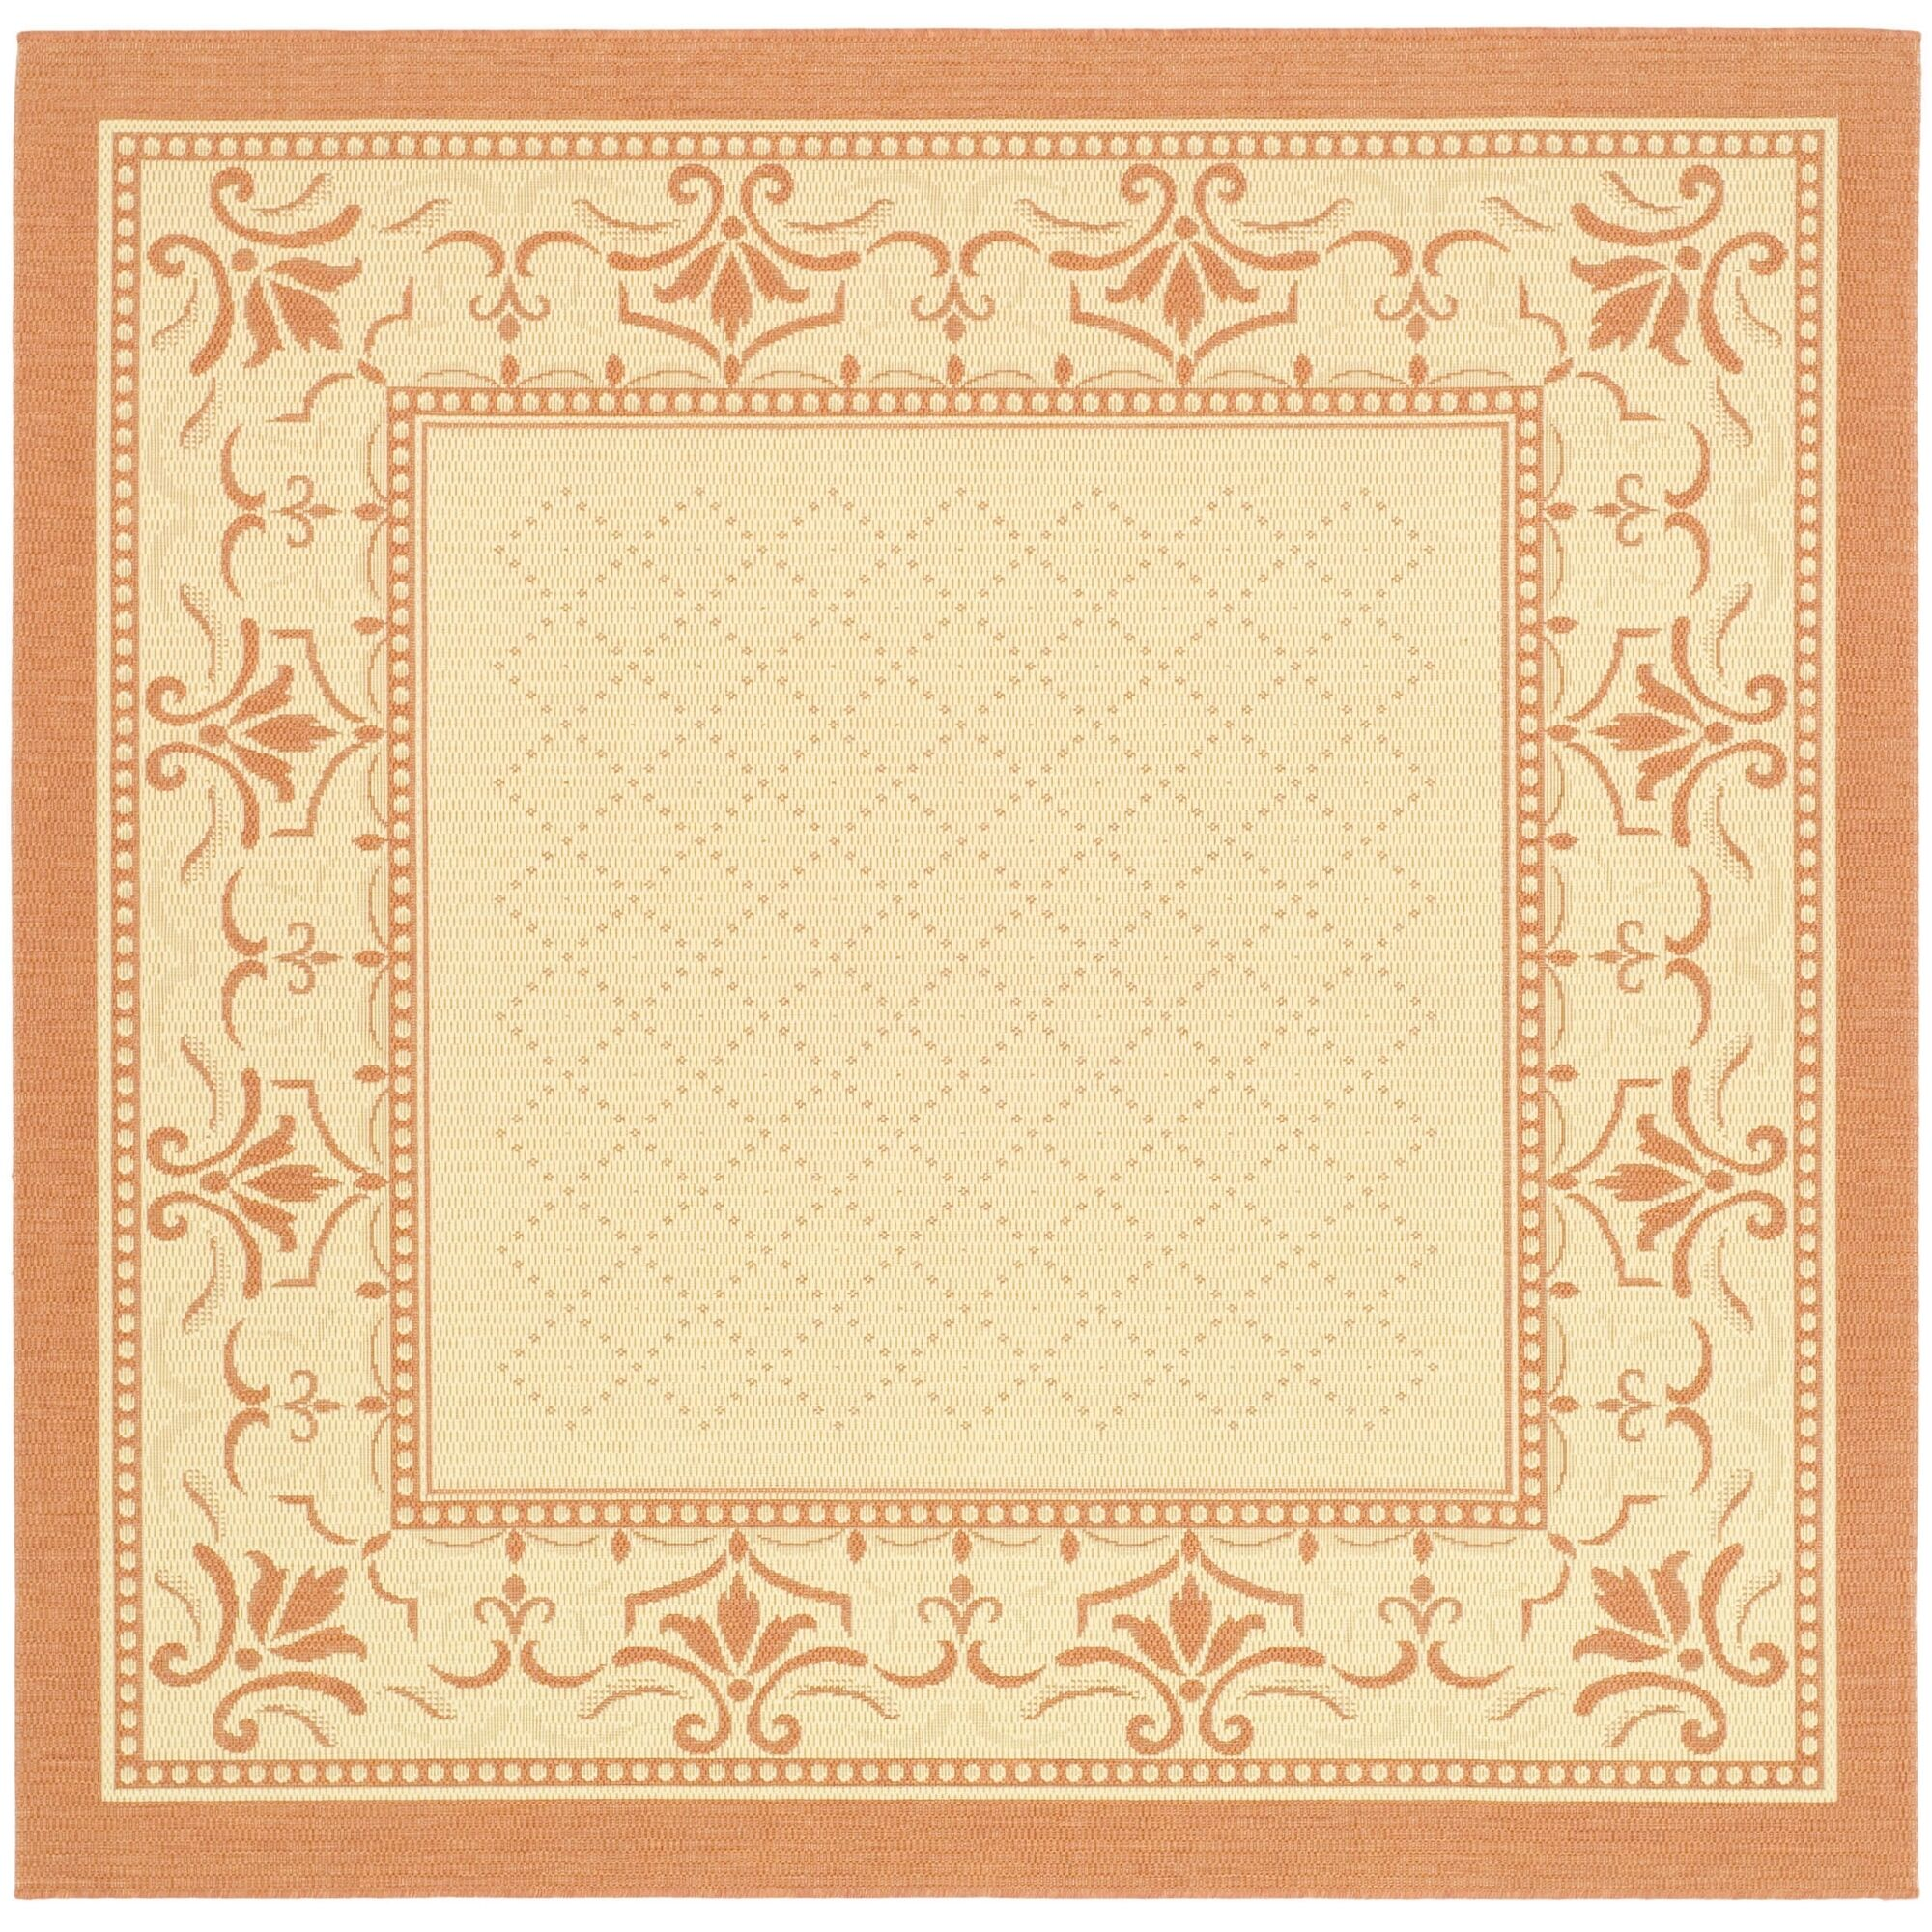 Amaryllis Natural/Terracotta Indoor/Outdoor Area Rug Rug Size: Square 7'10